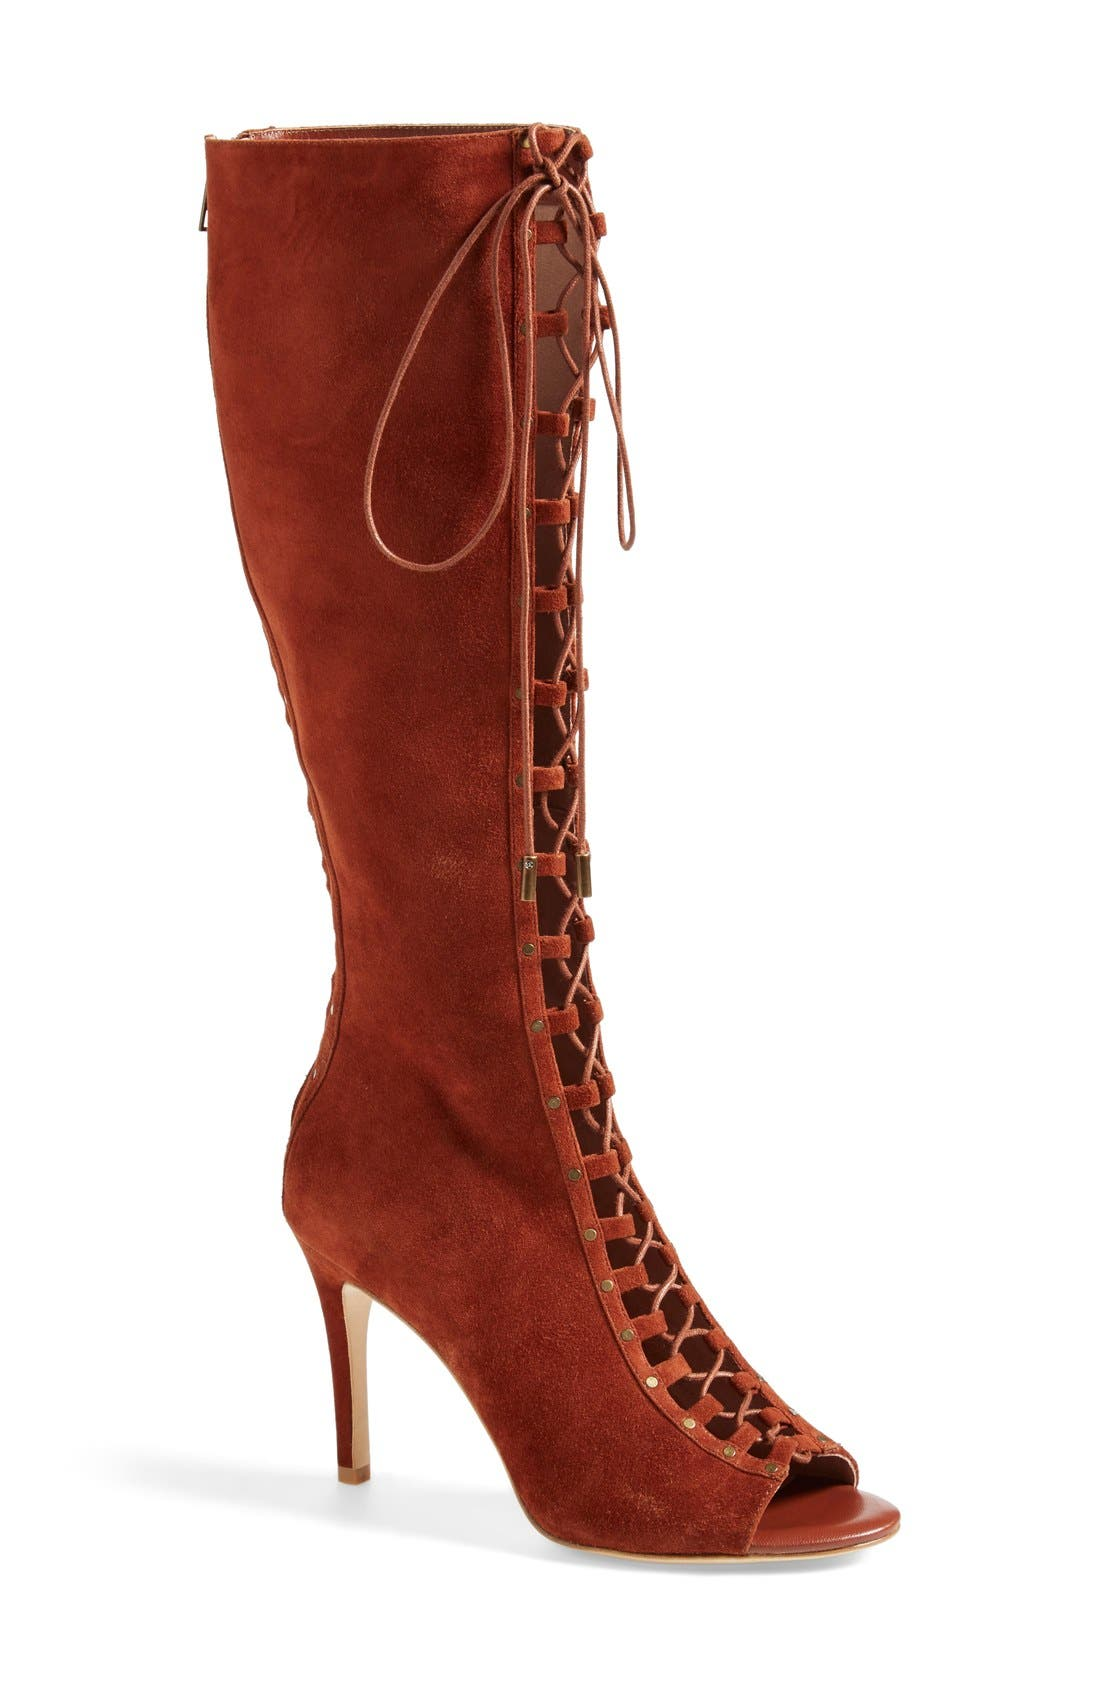 Main Image - Joie 'Aubrey' Lace-Up Tall Boot (Women)